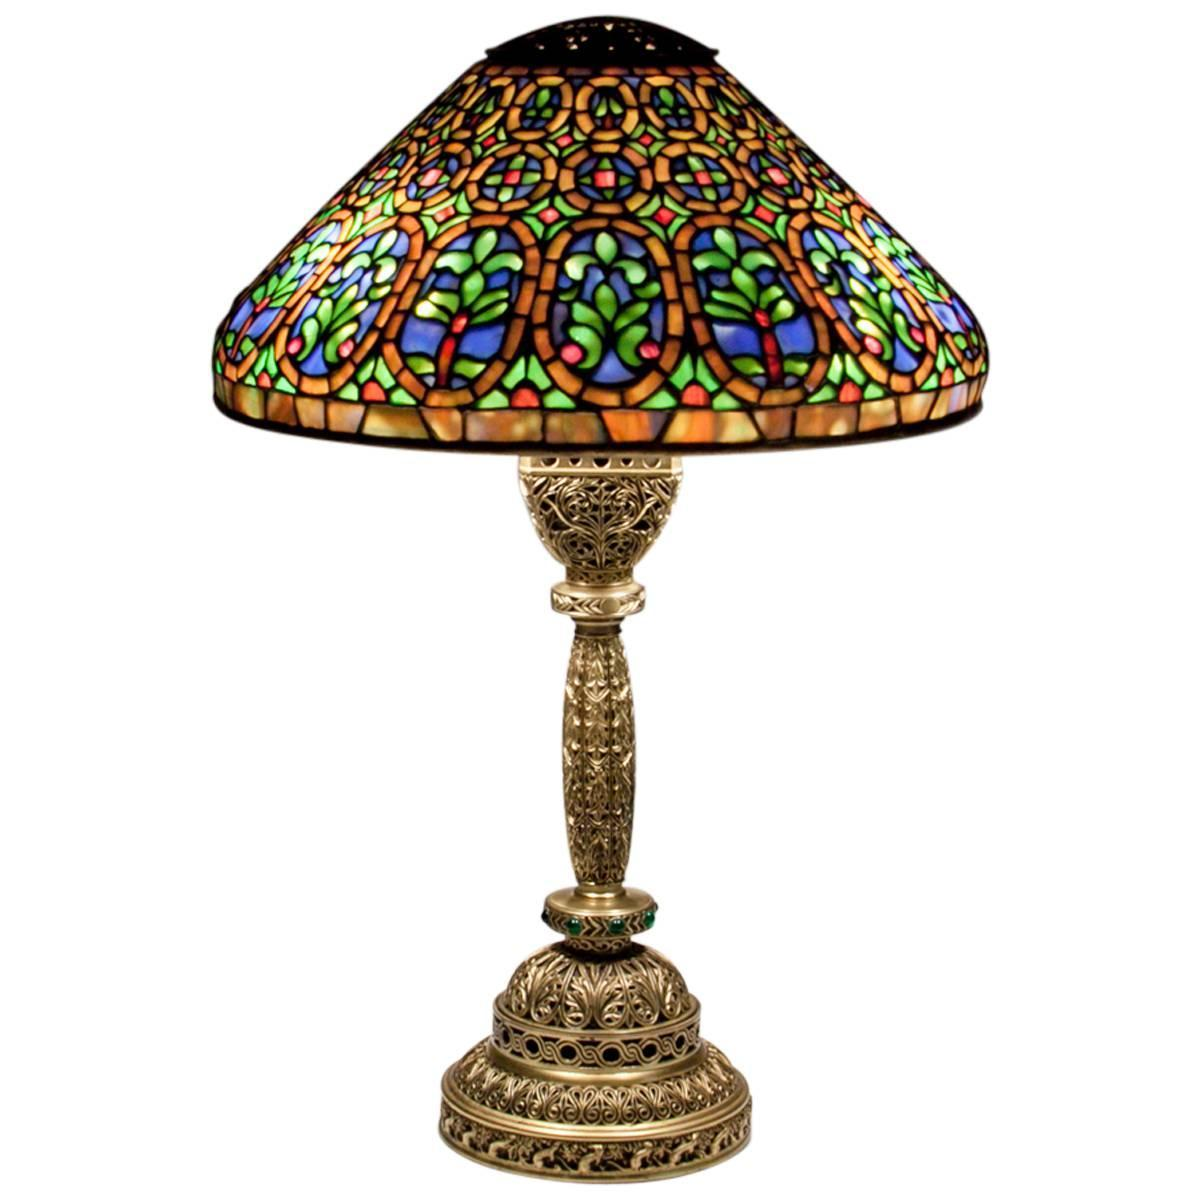 Tiffany Studios Venetian Desk Lamp At 1stdibs